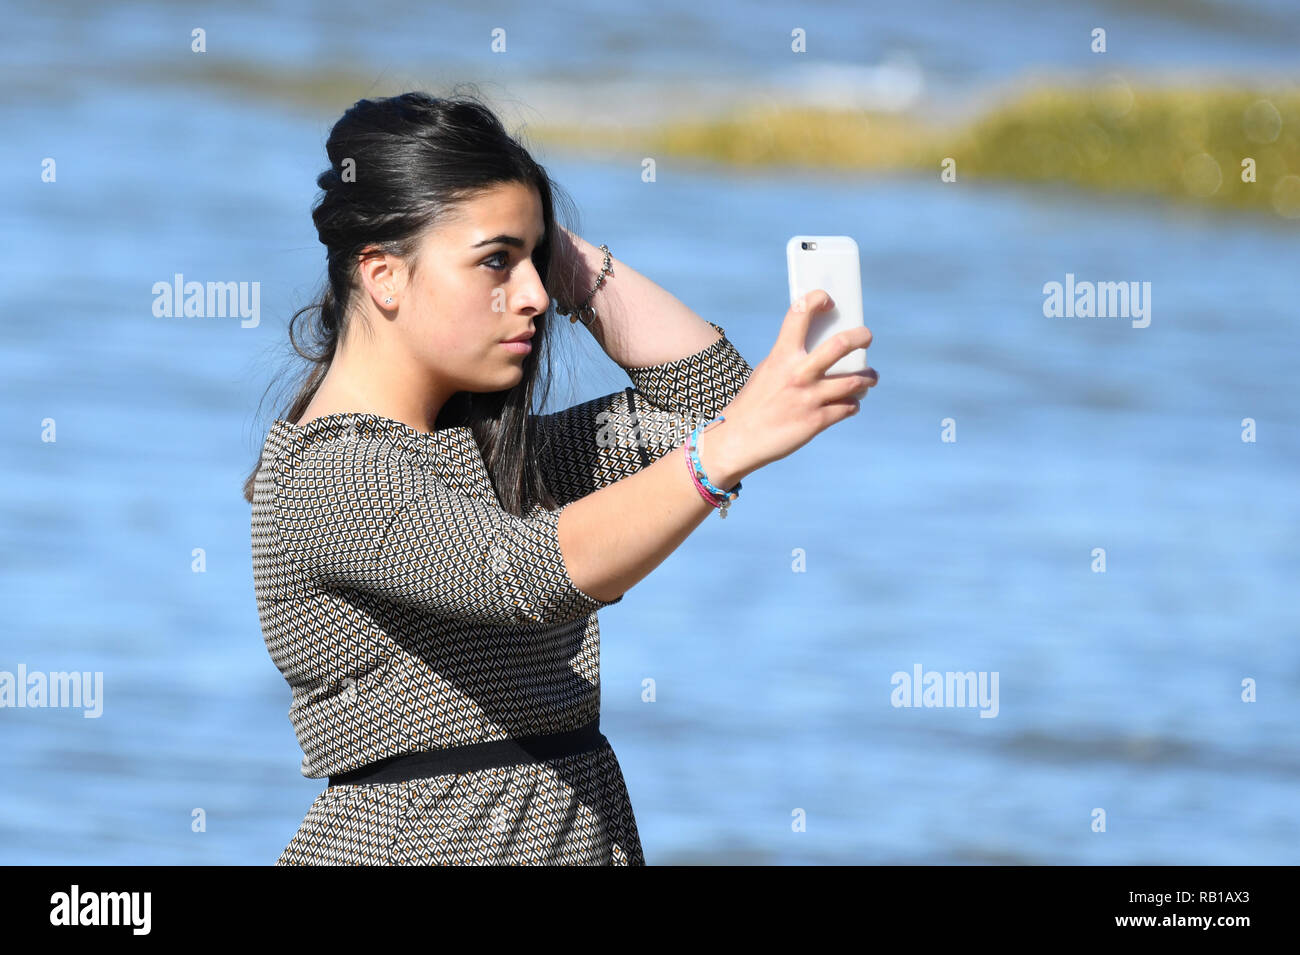 Young woman, teenager or early 20s, taking selfie photograph on a smartphone on a beach. - Stock Image